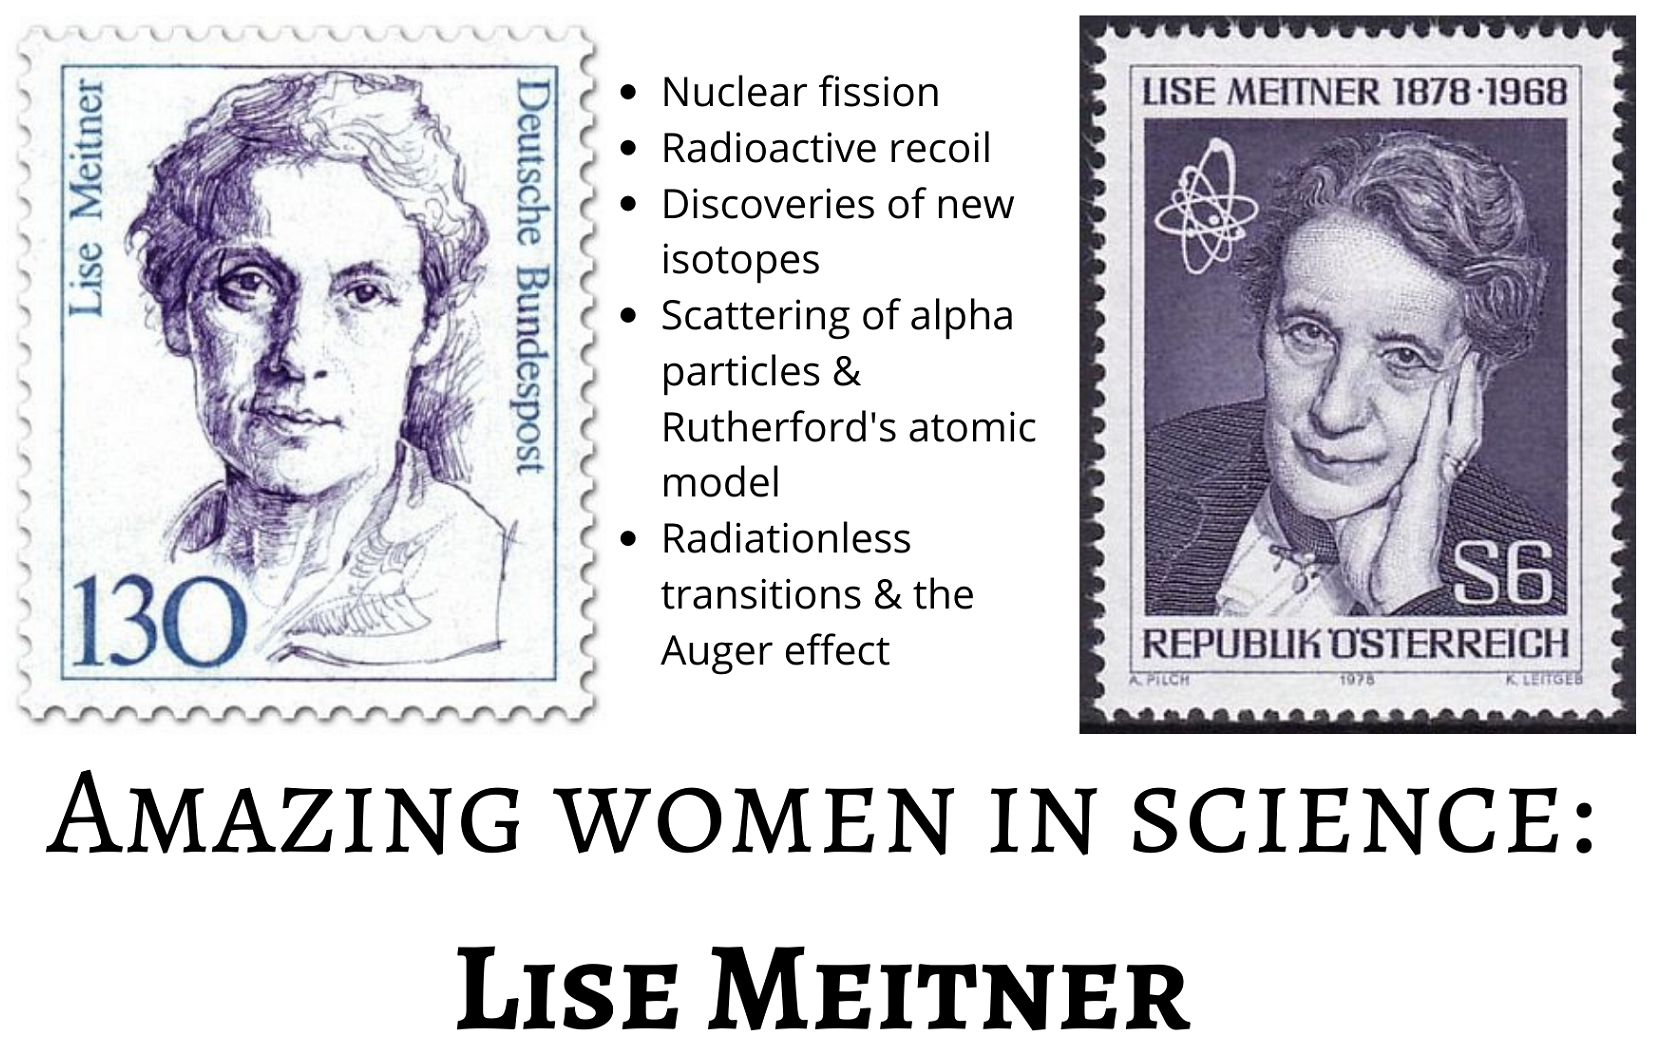 lise meitner nuclear fission radioactive recoil isotopes alpha scattering auger effect